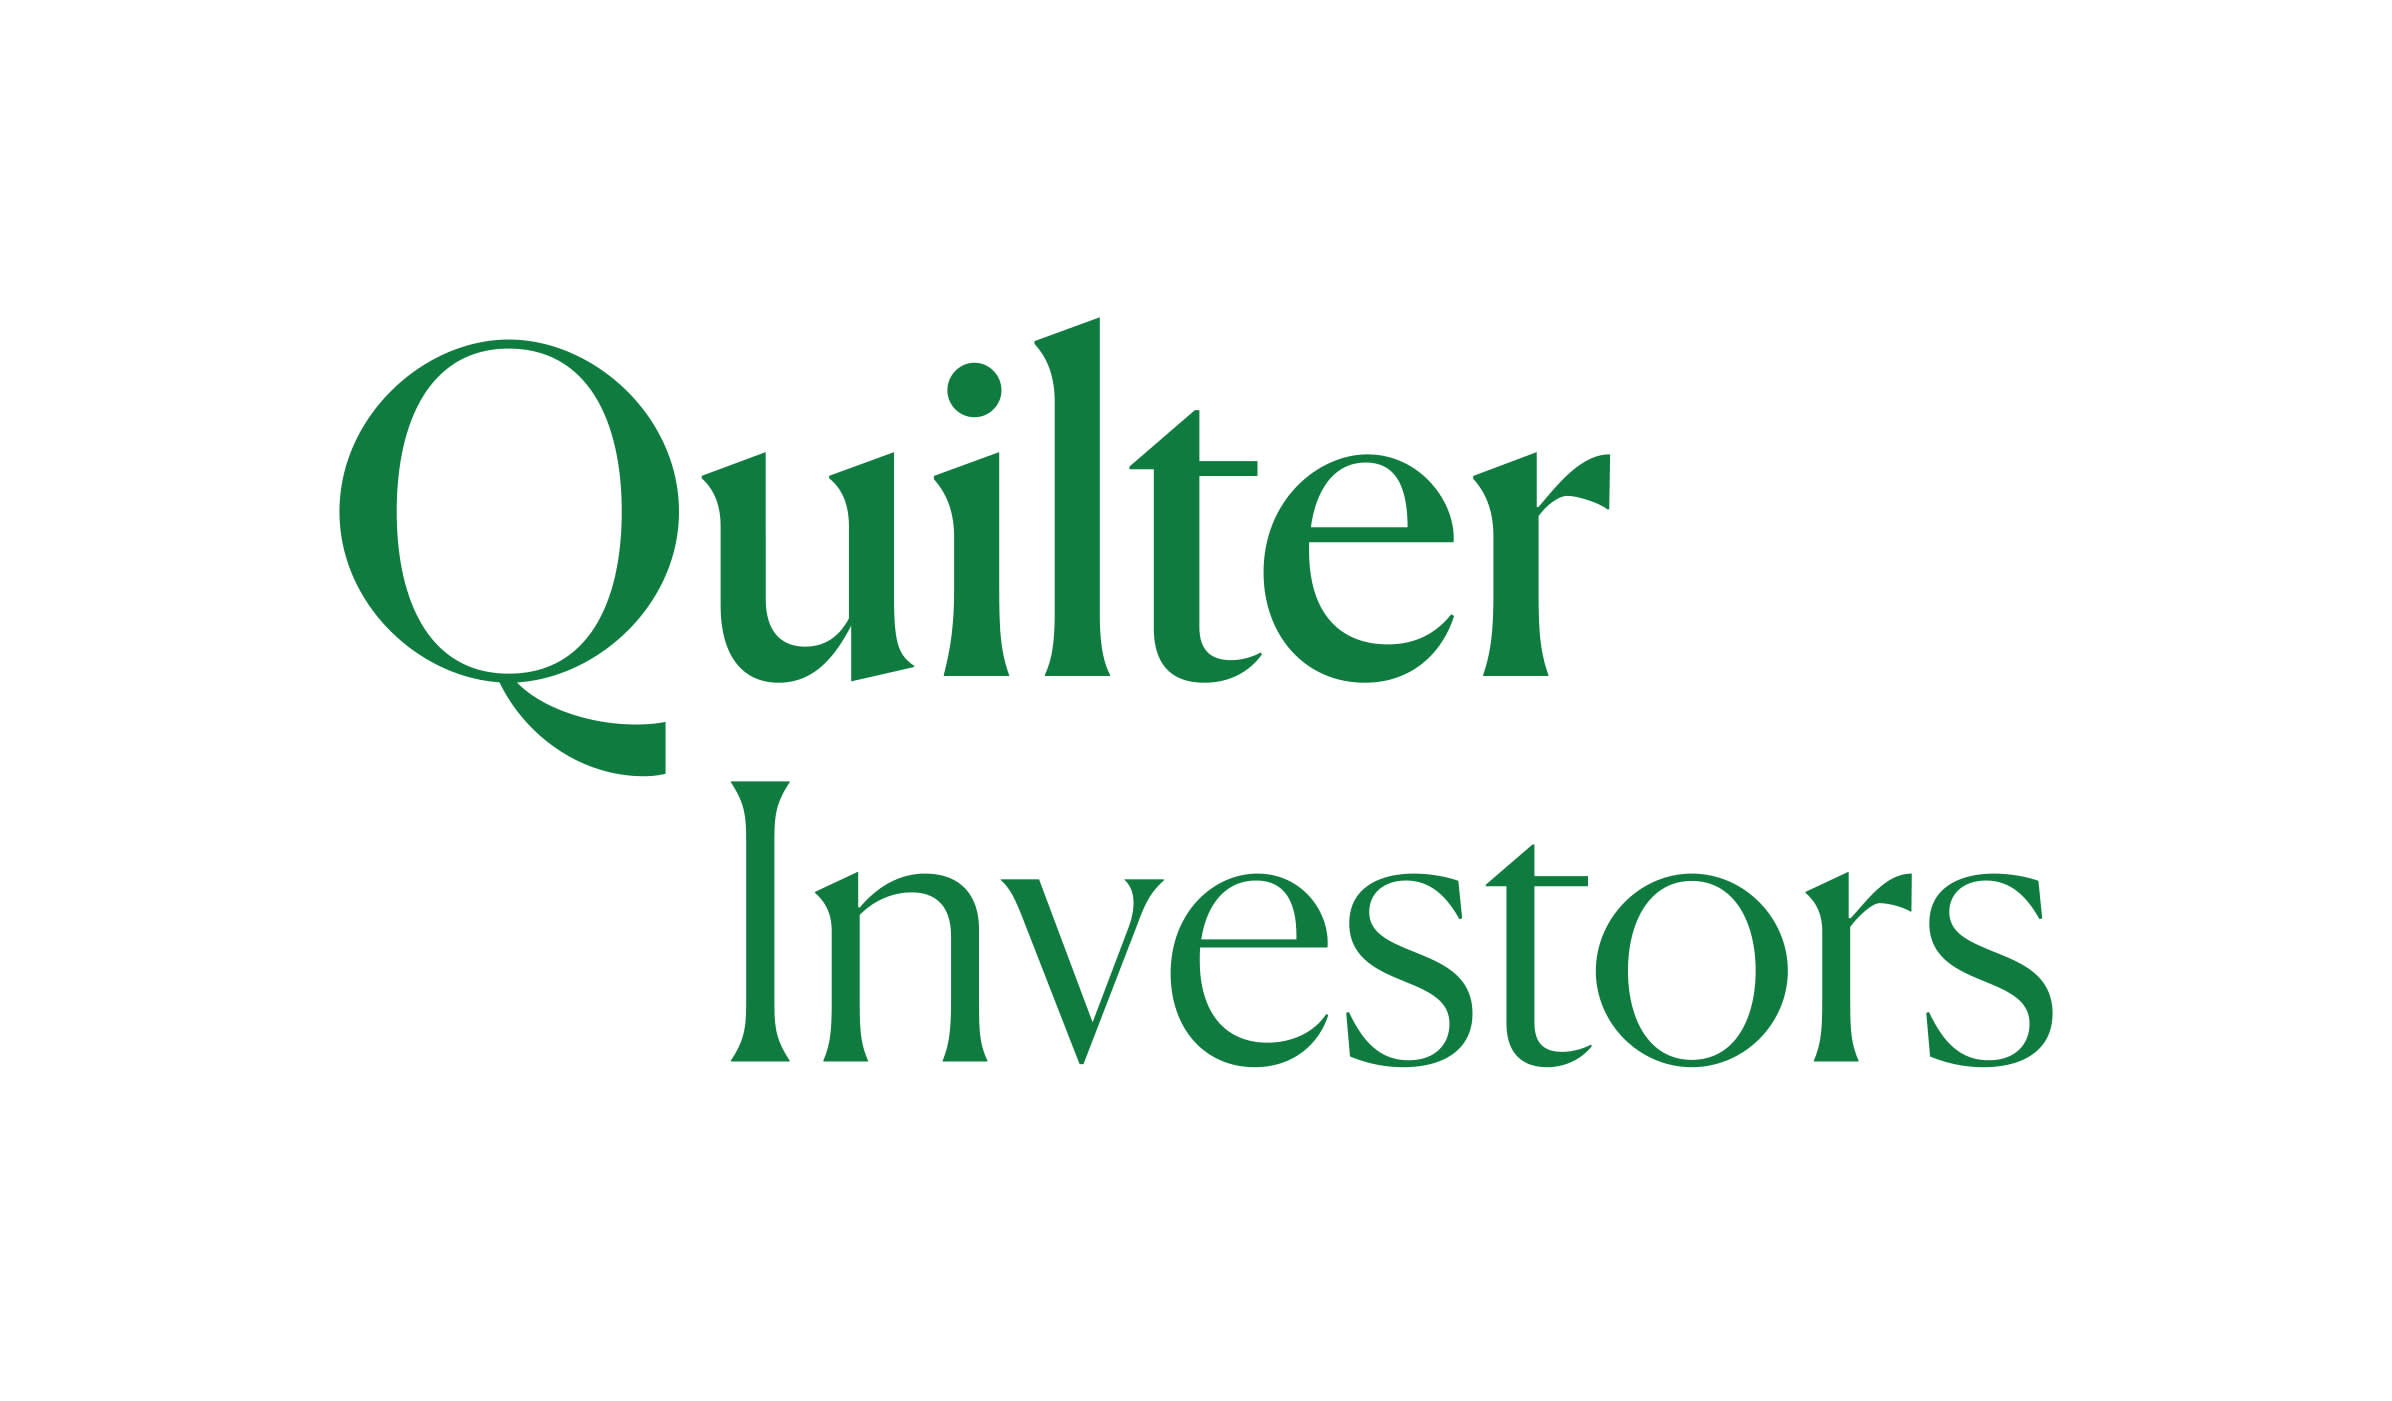 Quilter to launch multi-asset income range